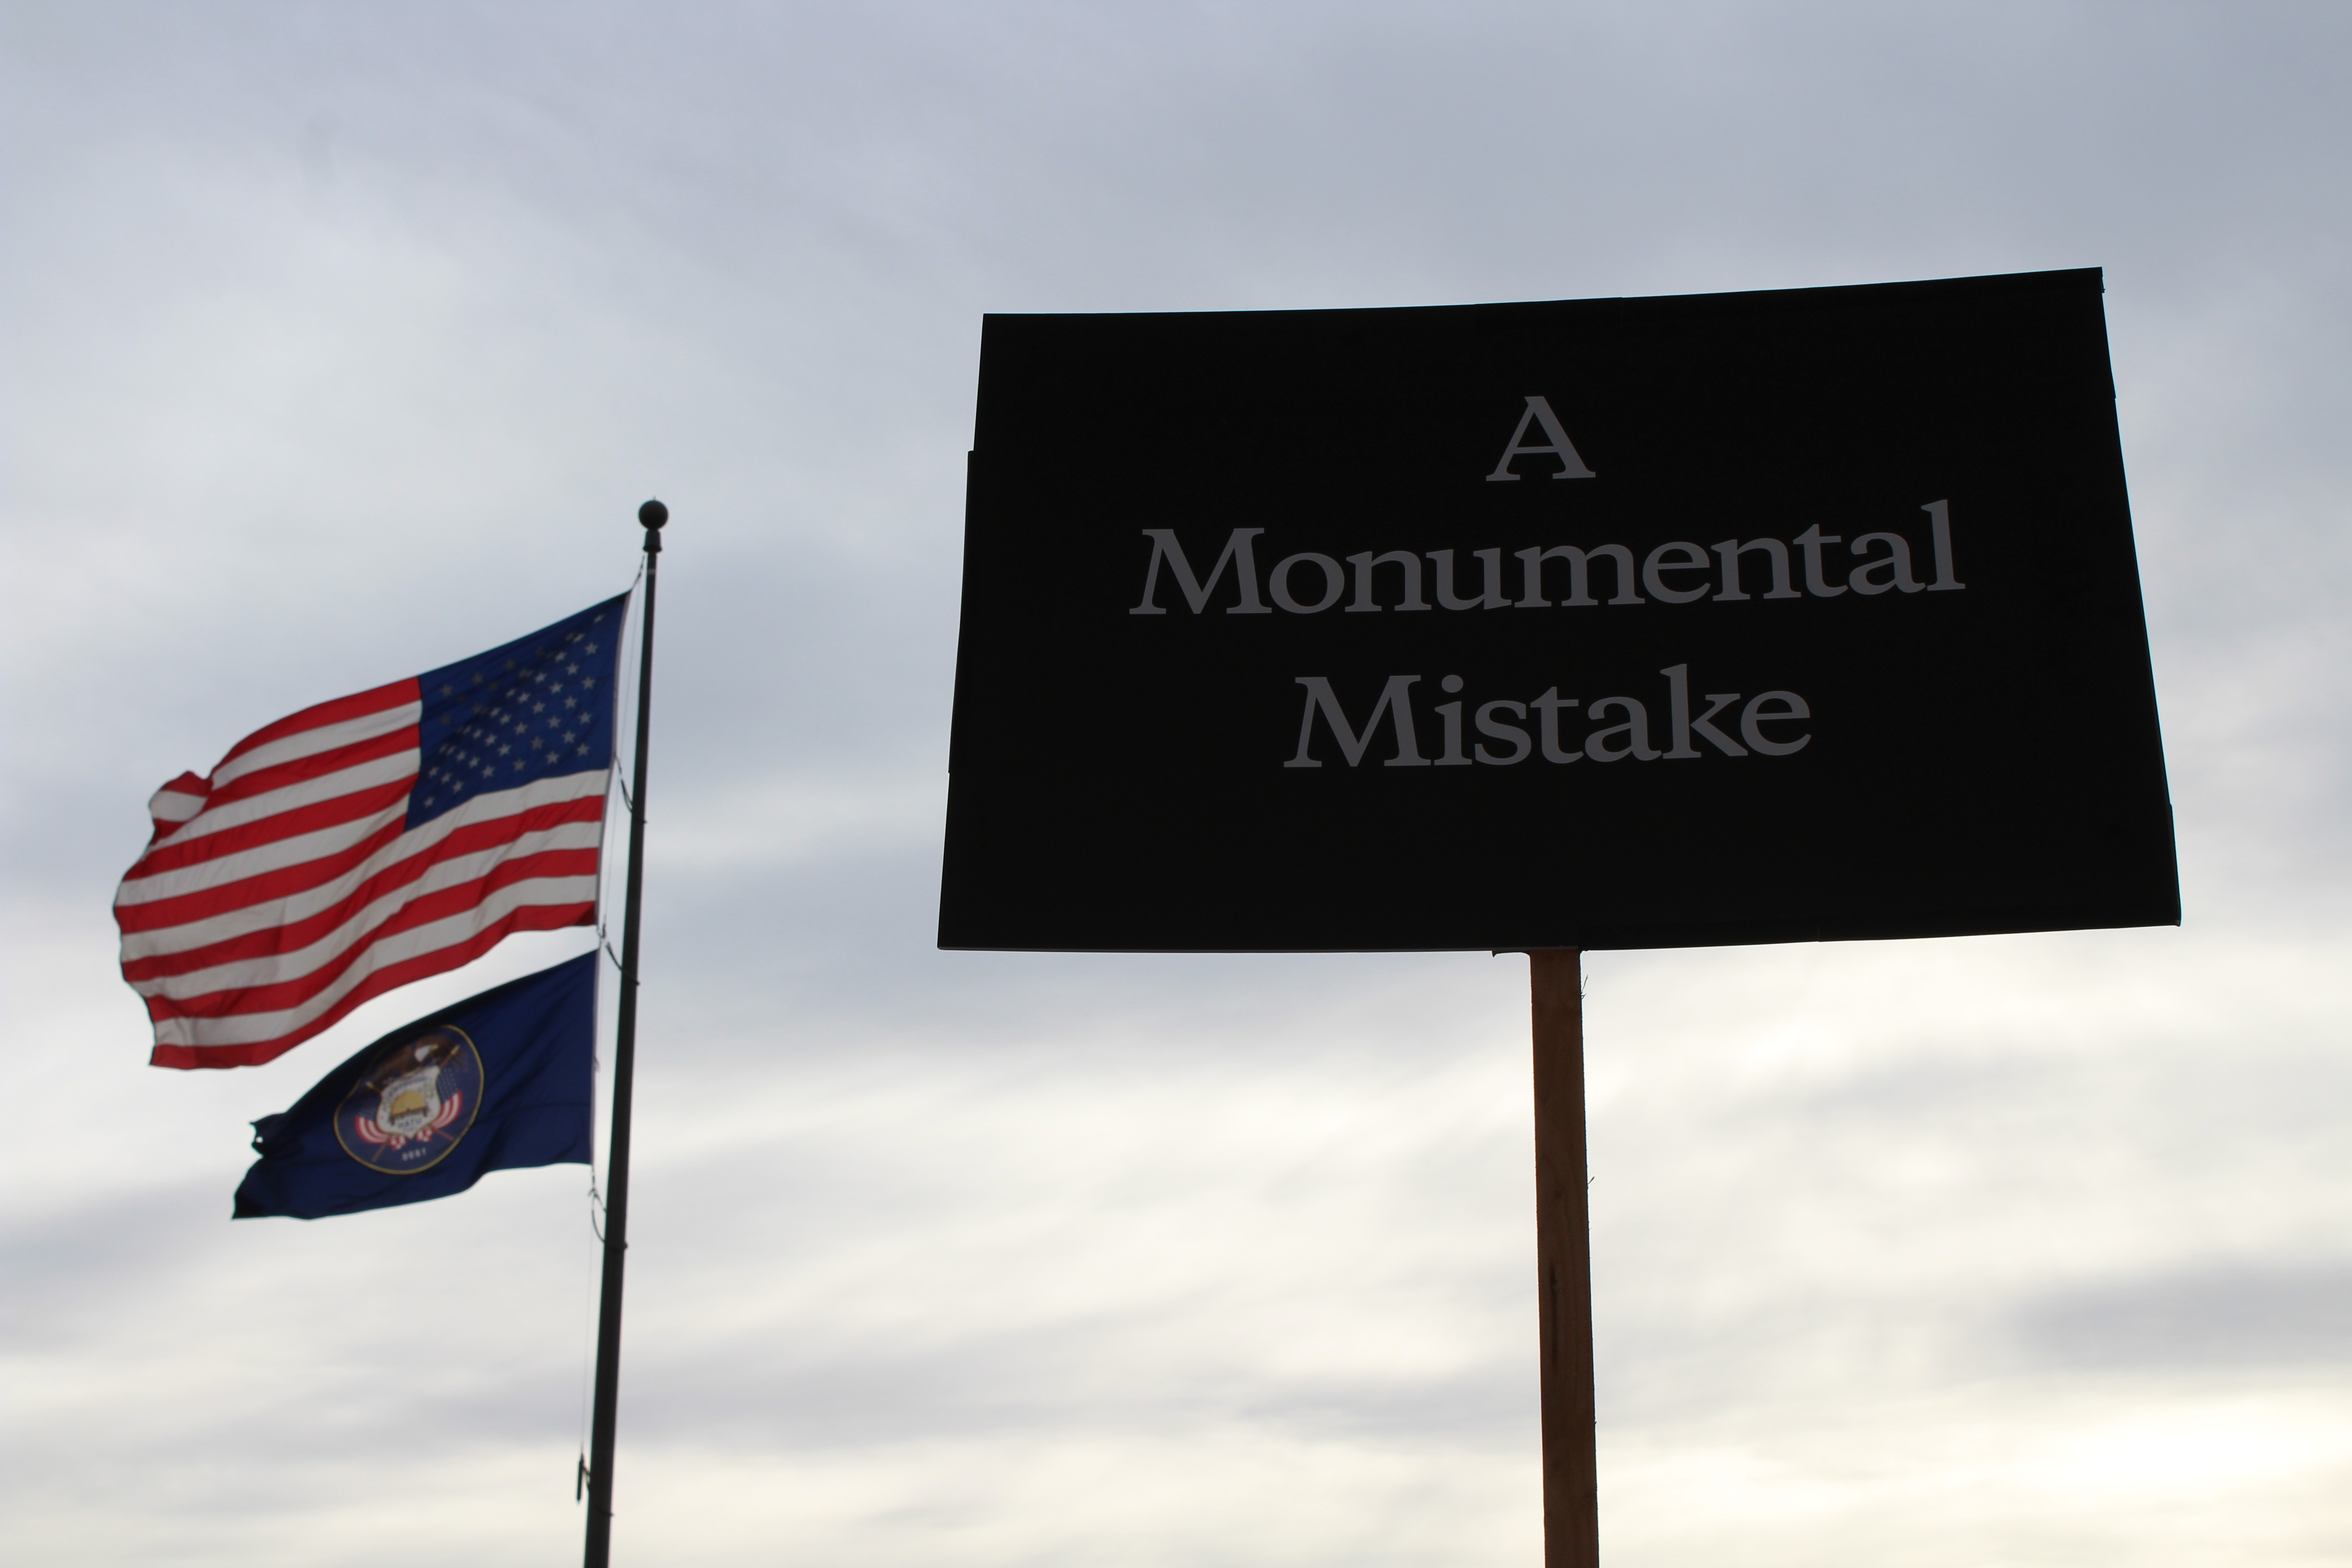 Environmentalists say Donald Trump does not have authority to shrink Utah monument